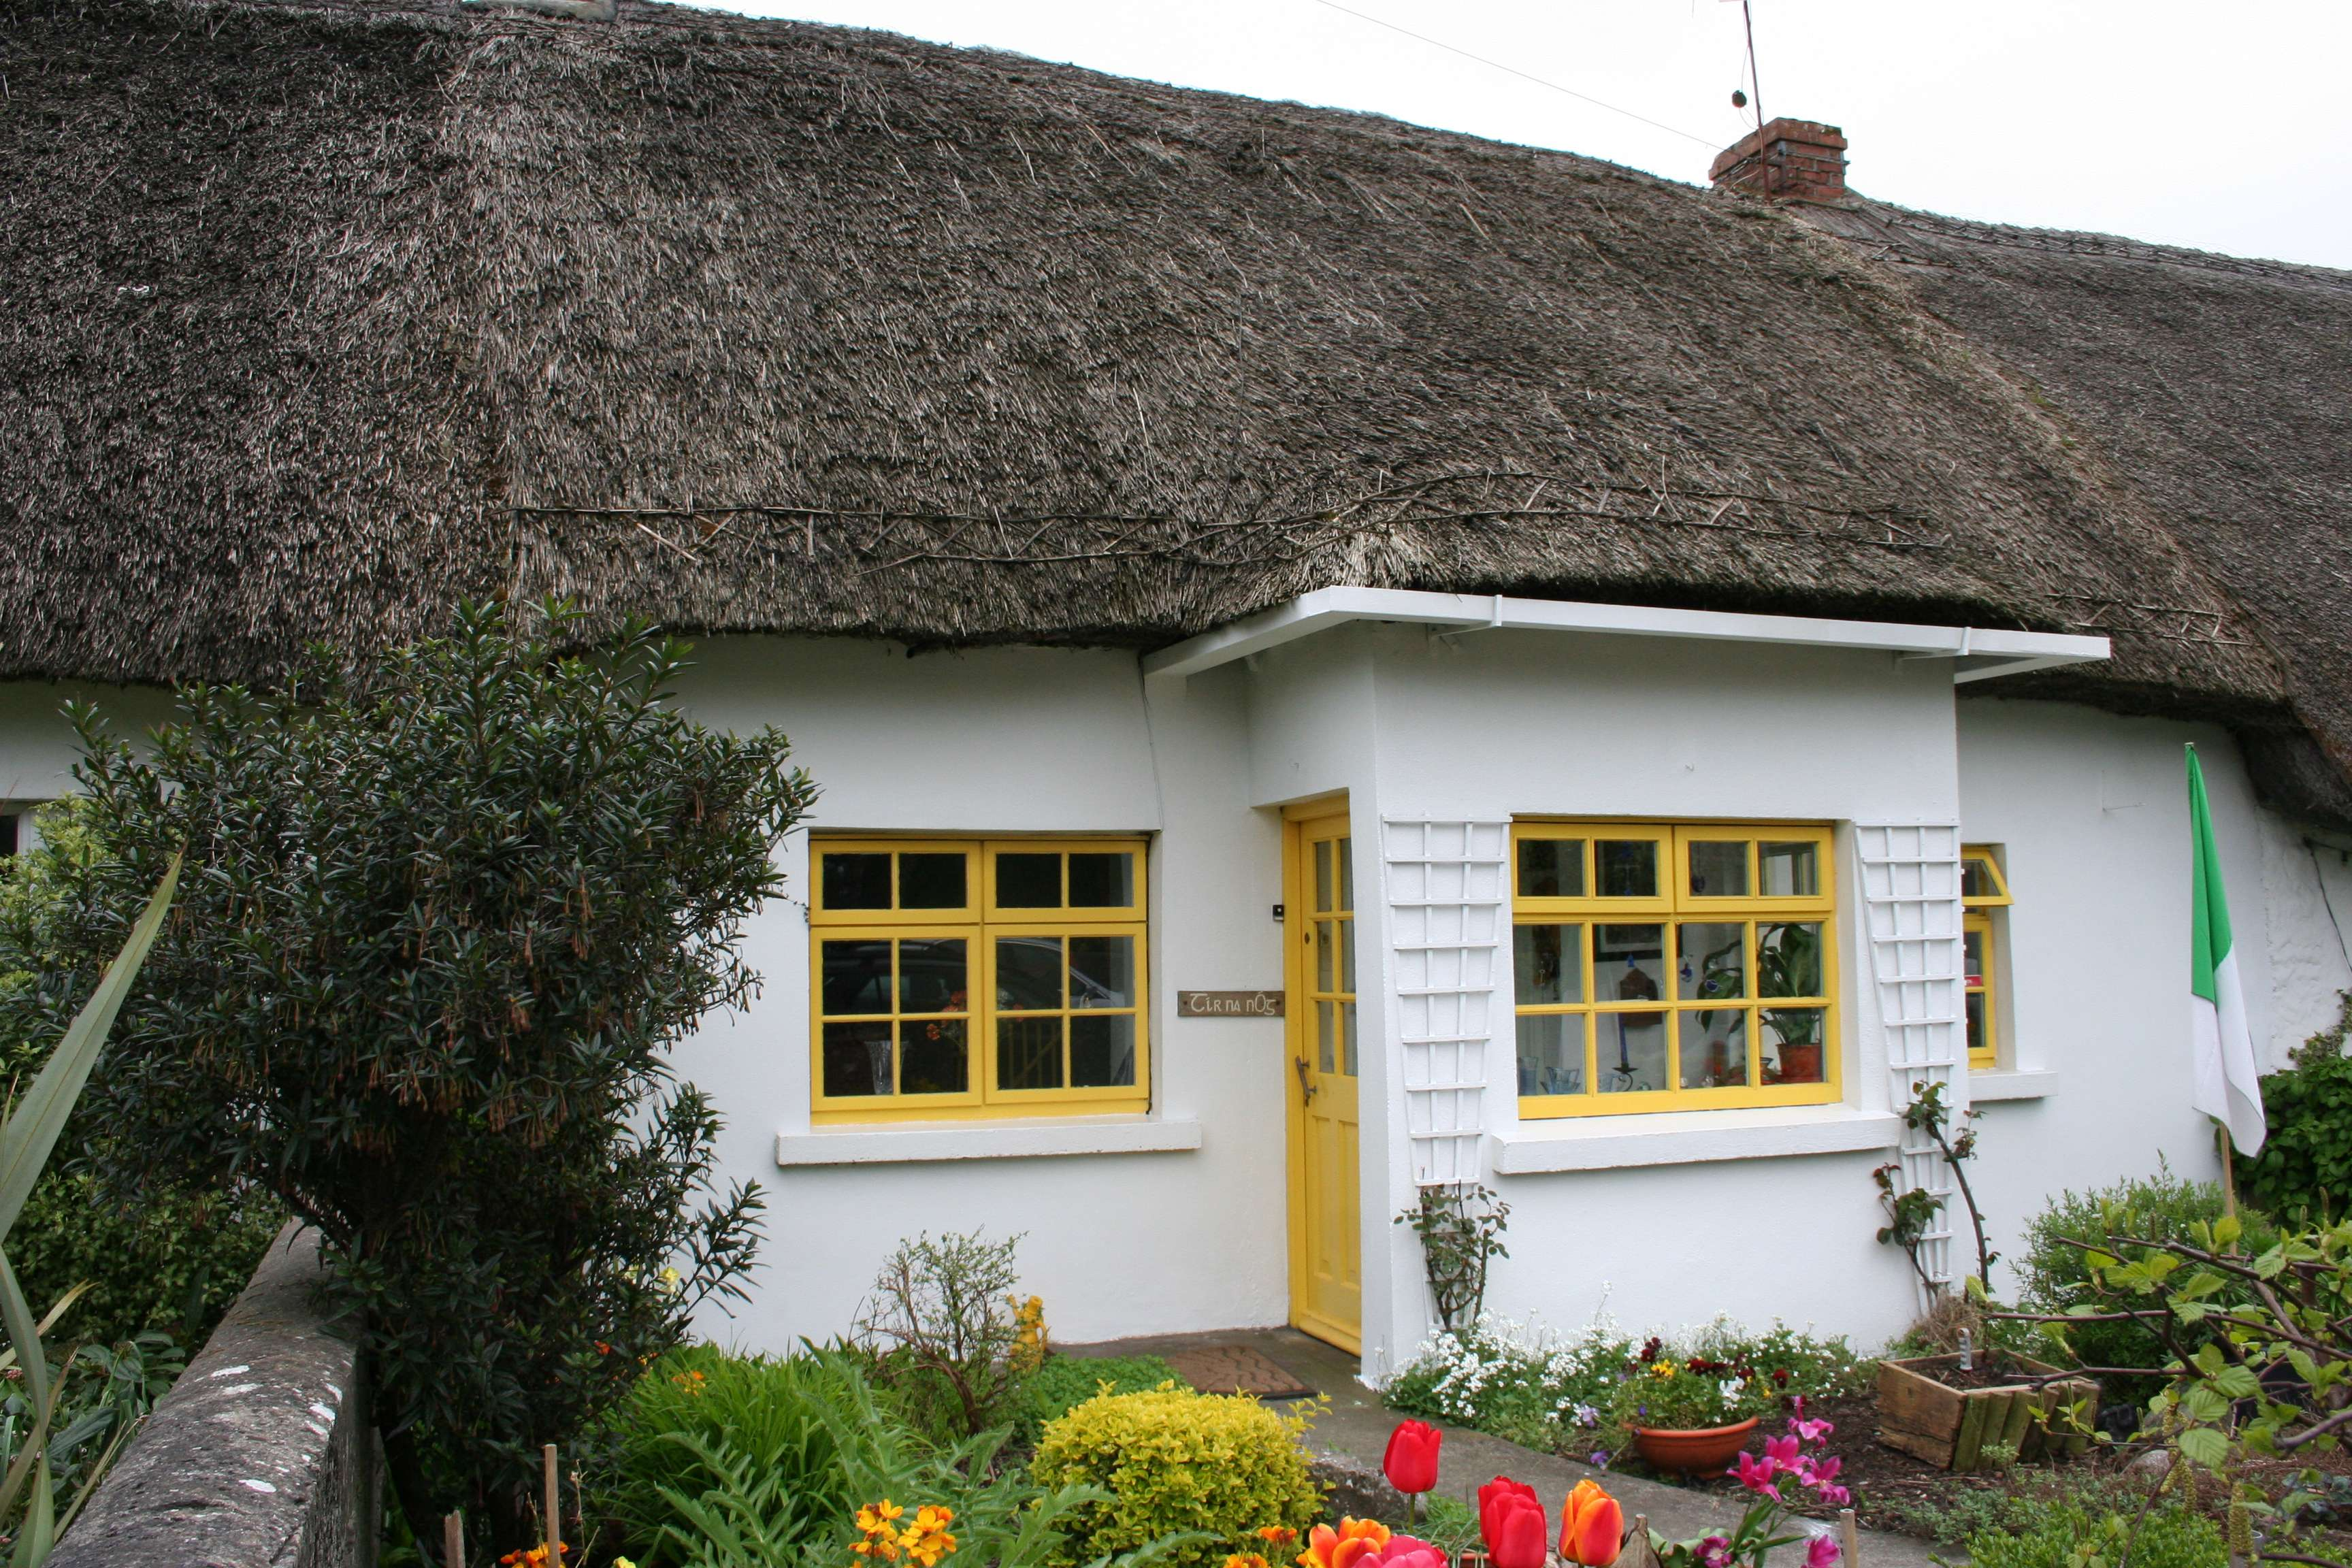 126 Thatched cottages, Adare, le 29 04